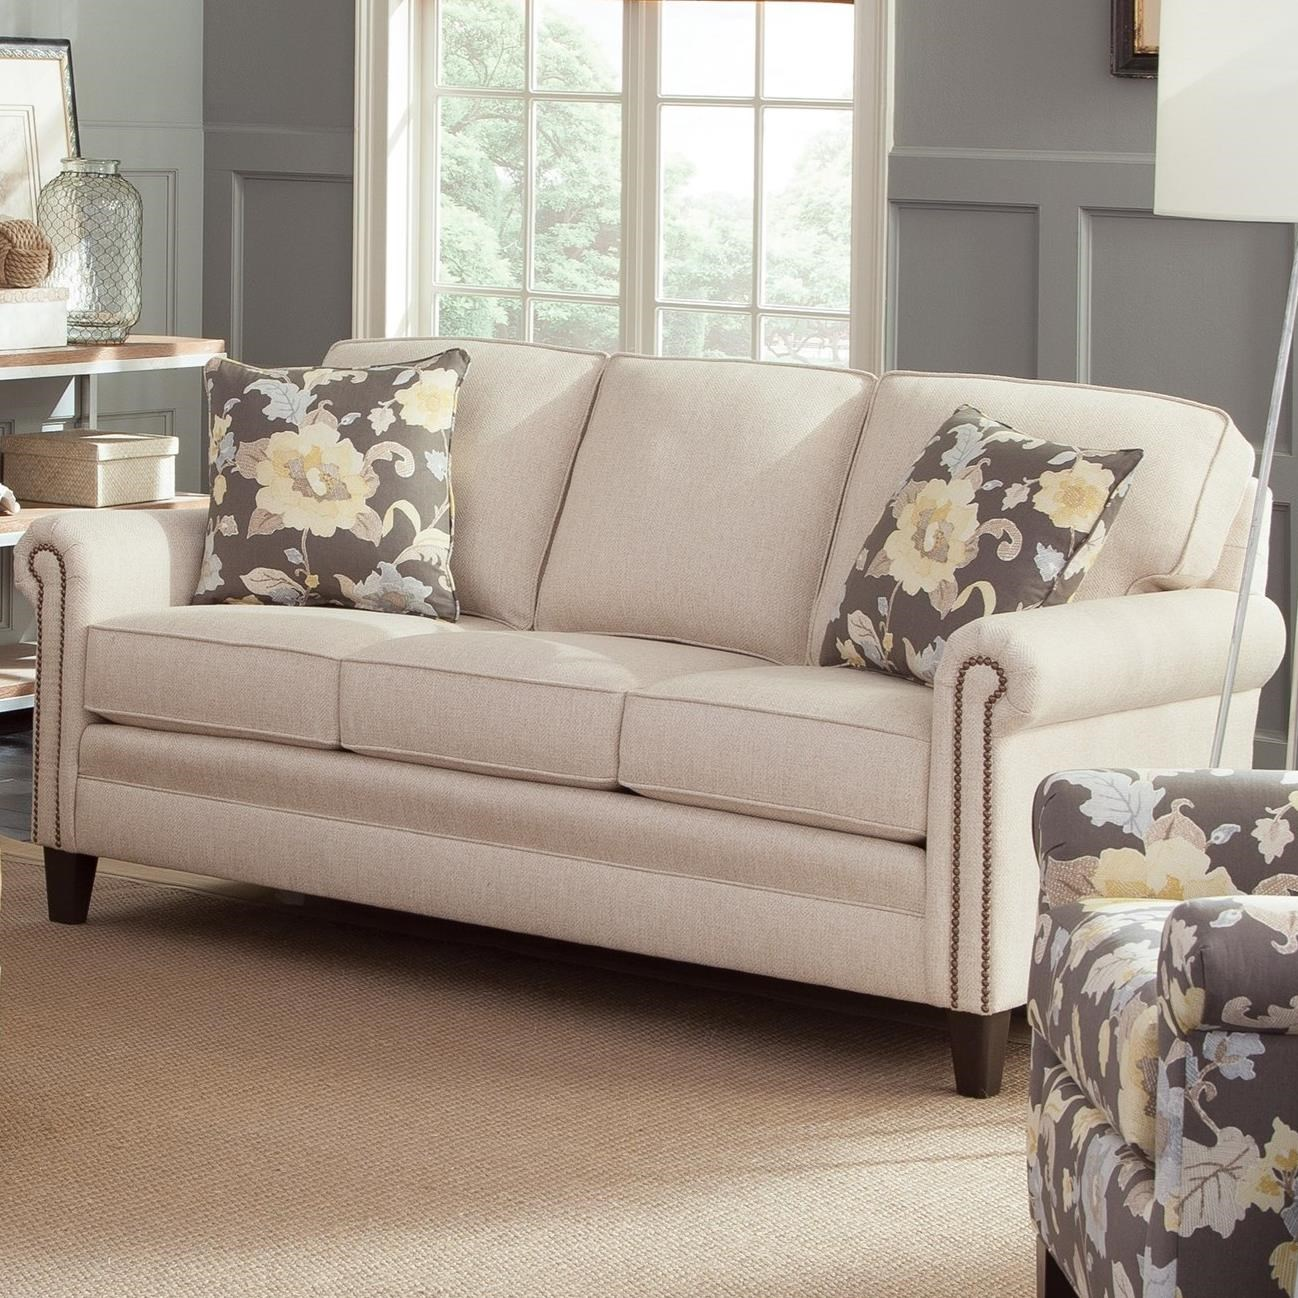 234 Mid-Size Sofa by Smith Brothers at Gill Brothers Furniture